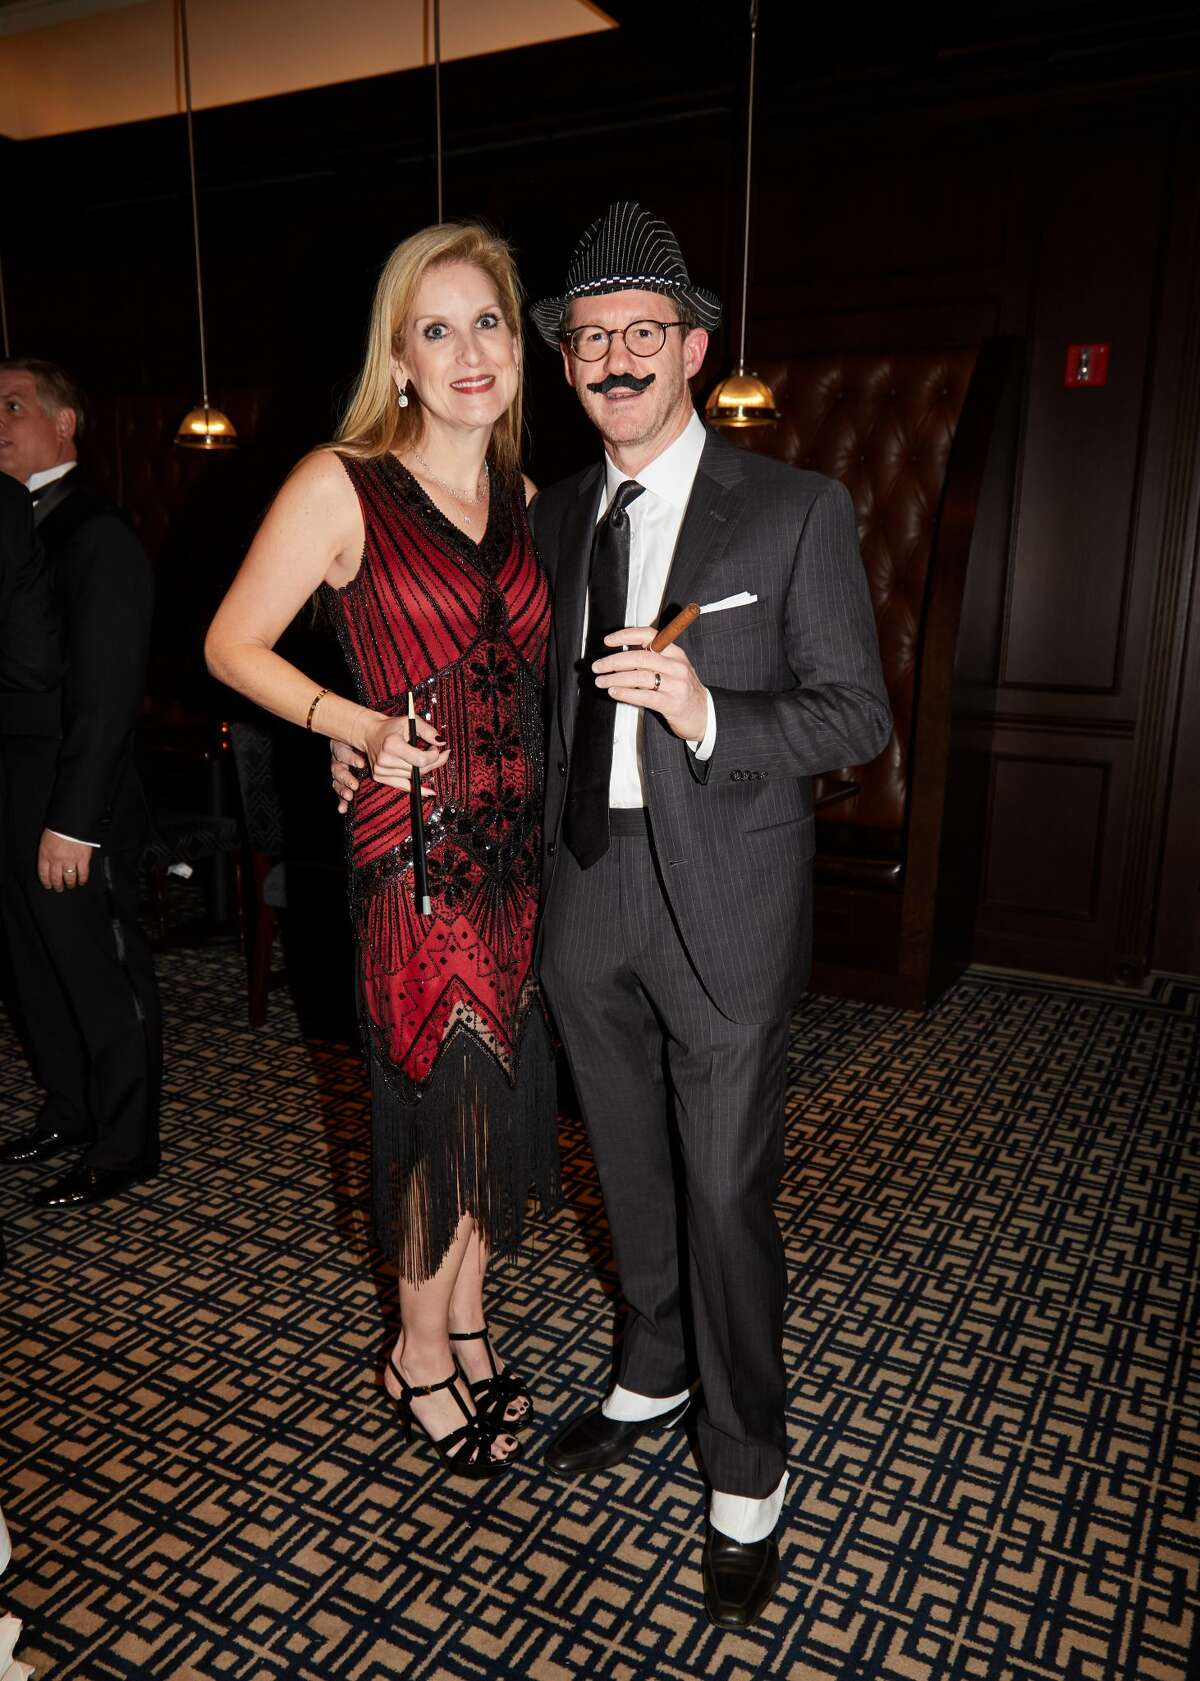 The Greenwich United Way celebrated 85 years of impact on Saturday, October 13, with a Pearls and Prohibition-theme gala at Greenwich Country Club. More than 300 attendees enjoyed live music, live and silent auctions, a tribute to former Board Chairs and the organization's evolution. The event was Co-chaired by Sabrina Pray Forsythe, Karen Keegan and Nicole Kwasniewski. Honorary Co-chairs were Leslie & John Cooper. Sponsors included Greenwich Hospital, United Bank, Shreve, Crump & Low, Deutsch Family Wine & Spirits, Case Study Brands, Brown Advisory, Starr Films, Moffly Media - Greenwich Magazine, Serendipity and Sophia's Costumes and Rentals. Were you SEEN?